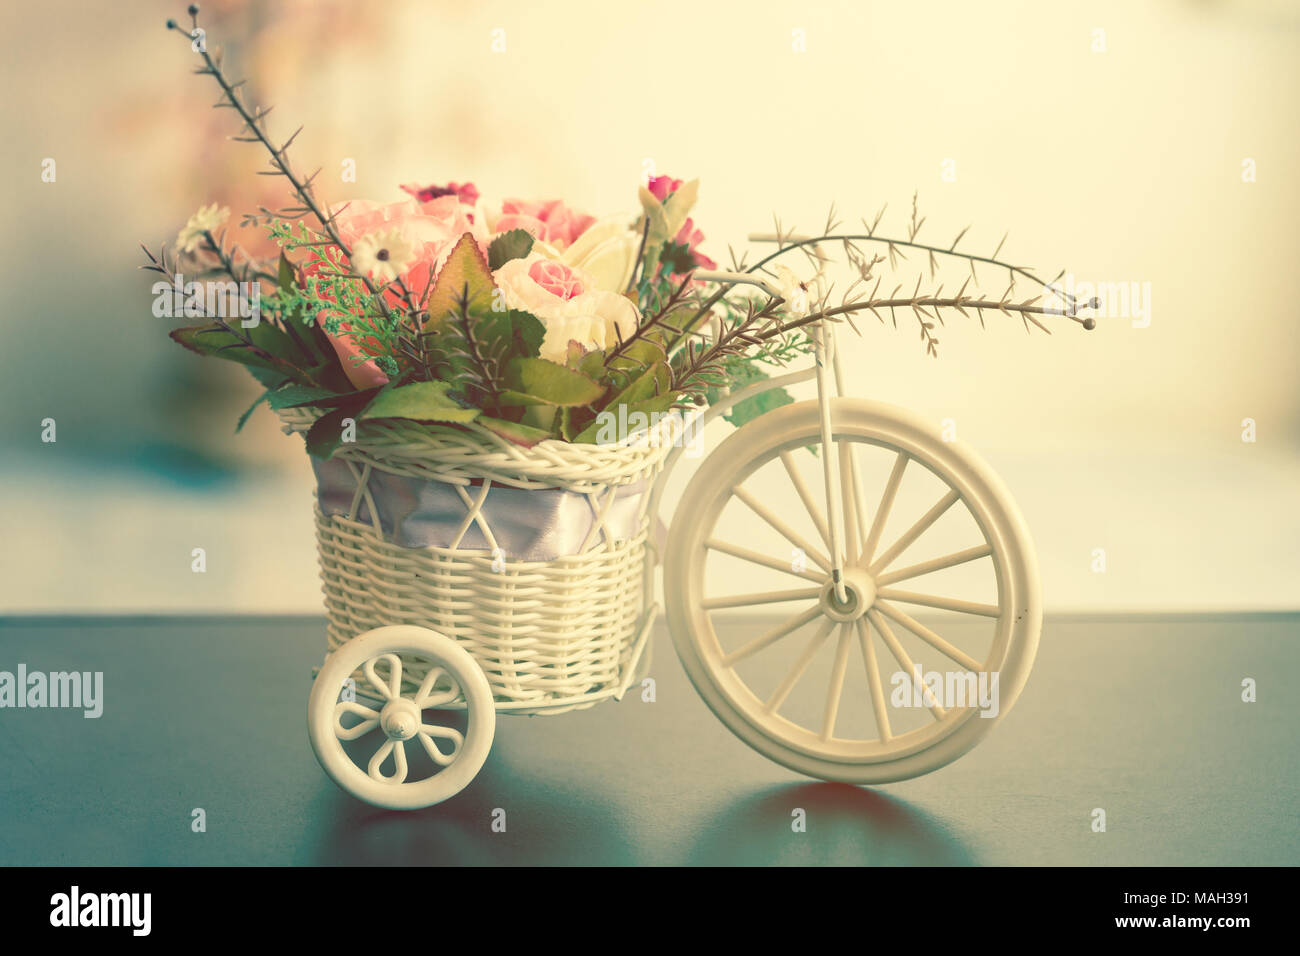 Artificial flowers in a white bicycle basket on black table artificial flowers in a white bicycle basket on black table vintage style mightylinksfo